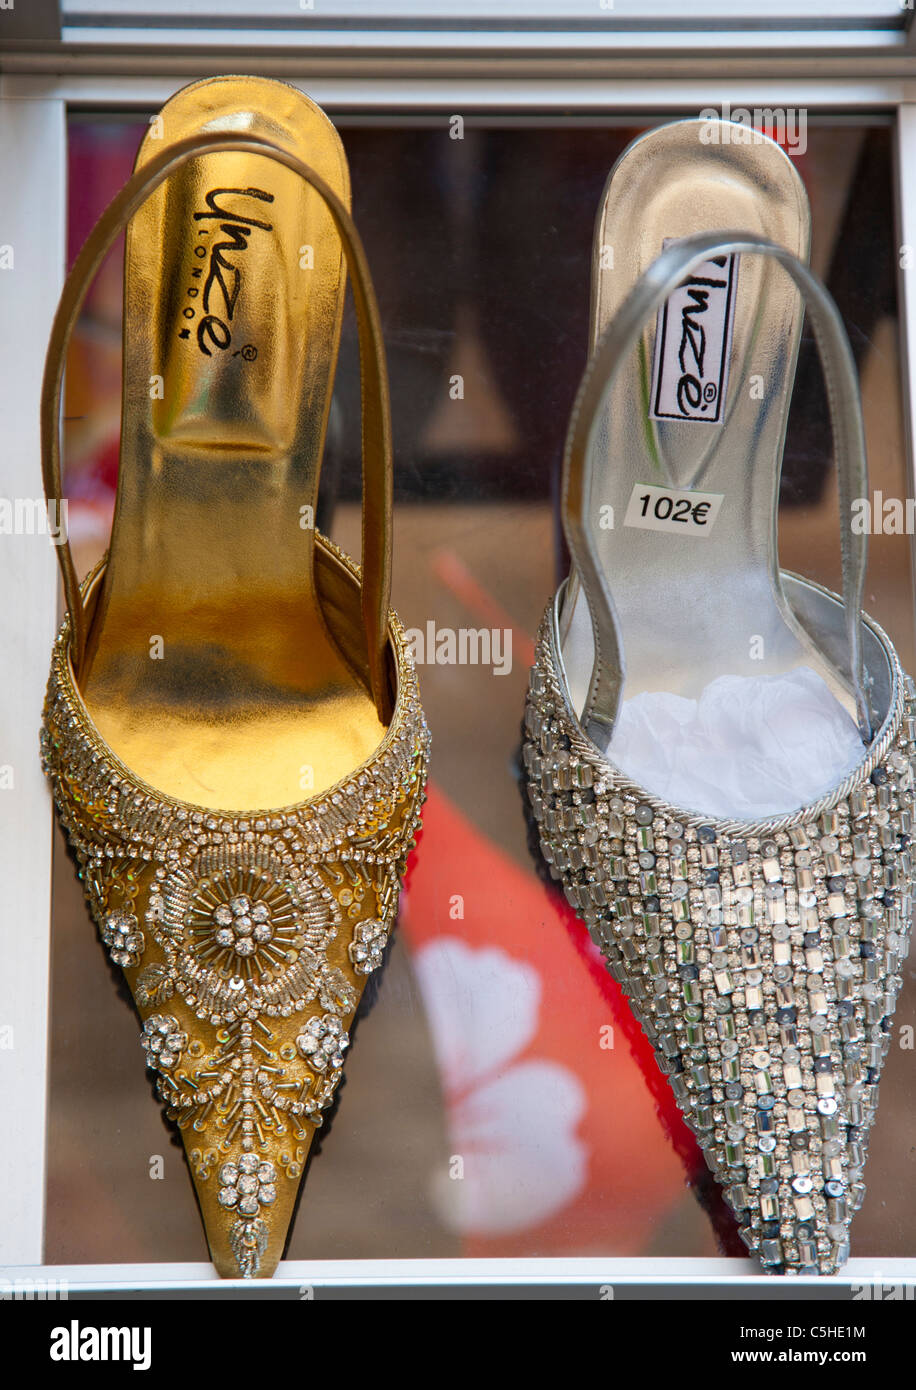 Expensive shoes in a shop window, St Paul de Vence, Provence, France - Stock Image